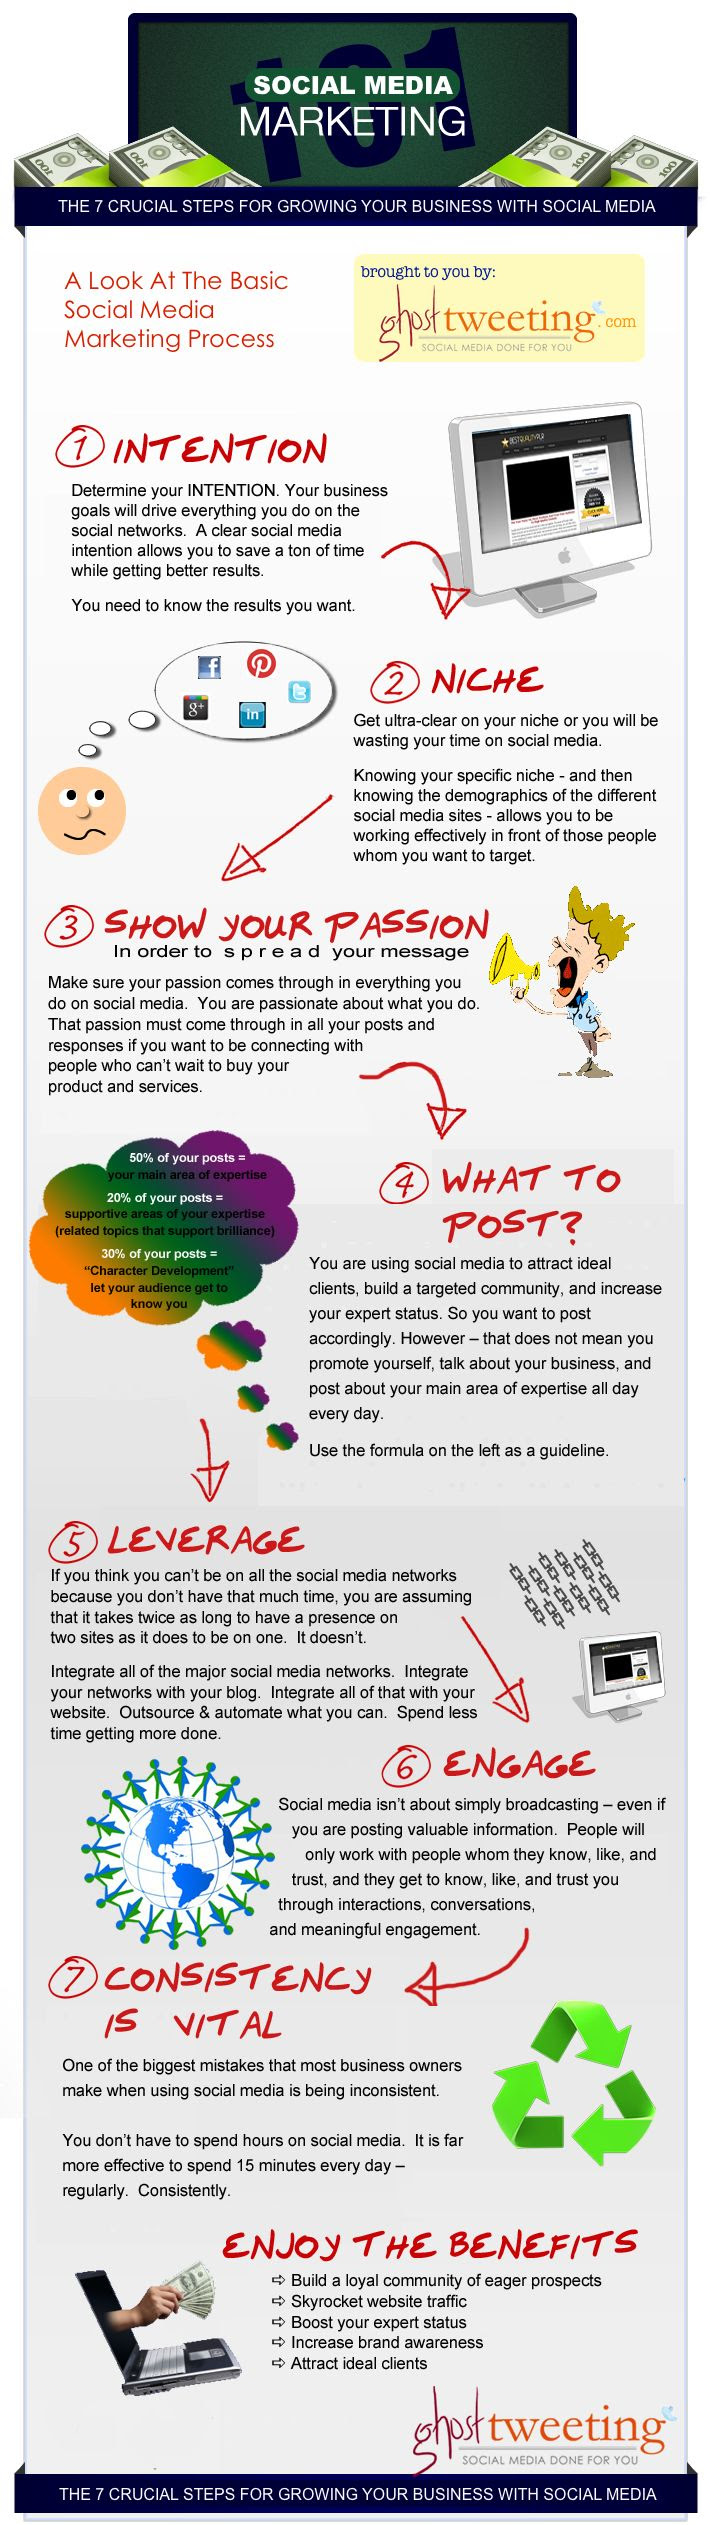 7 Essential Steps To Grow Your Business With Social Media Marketing: infographic